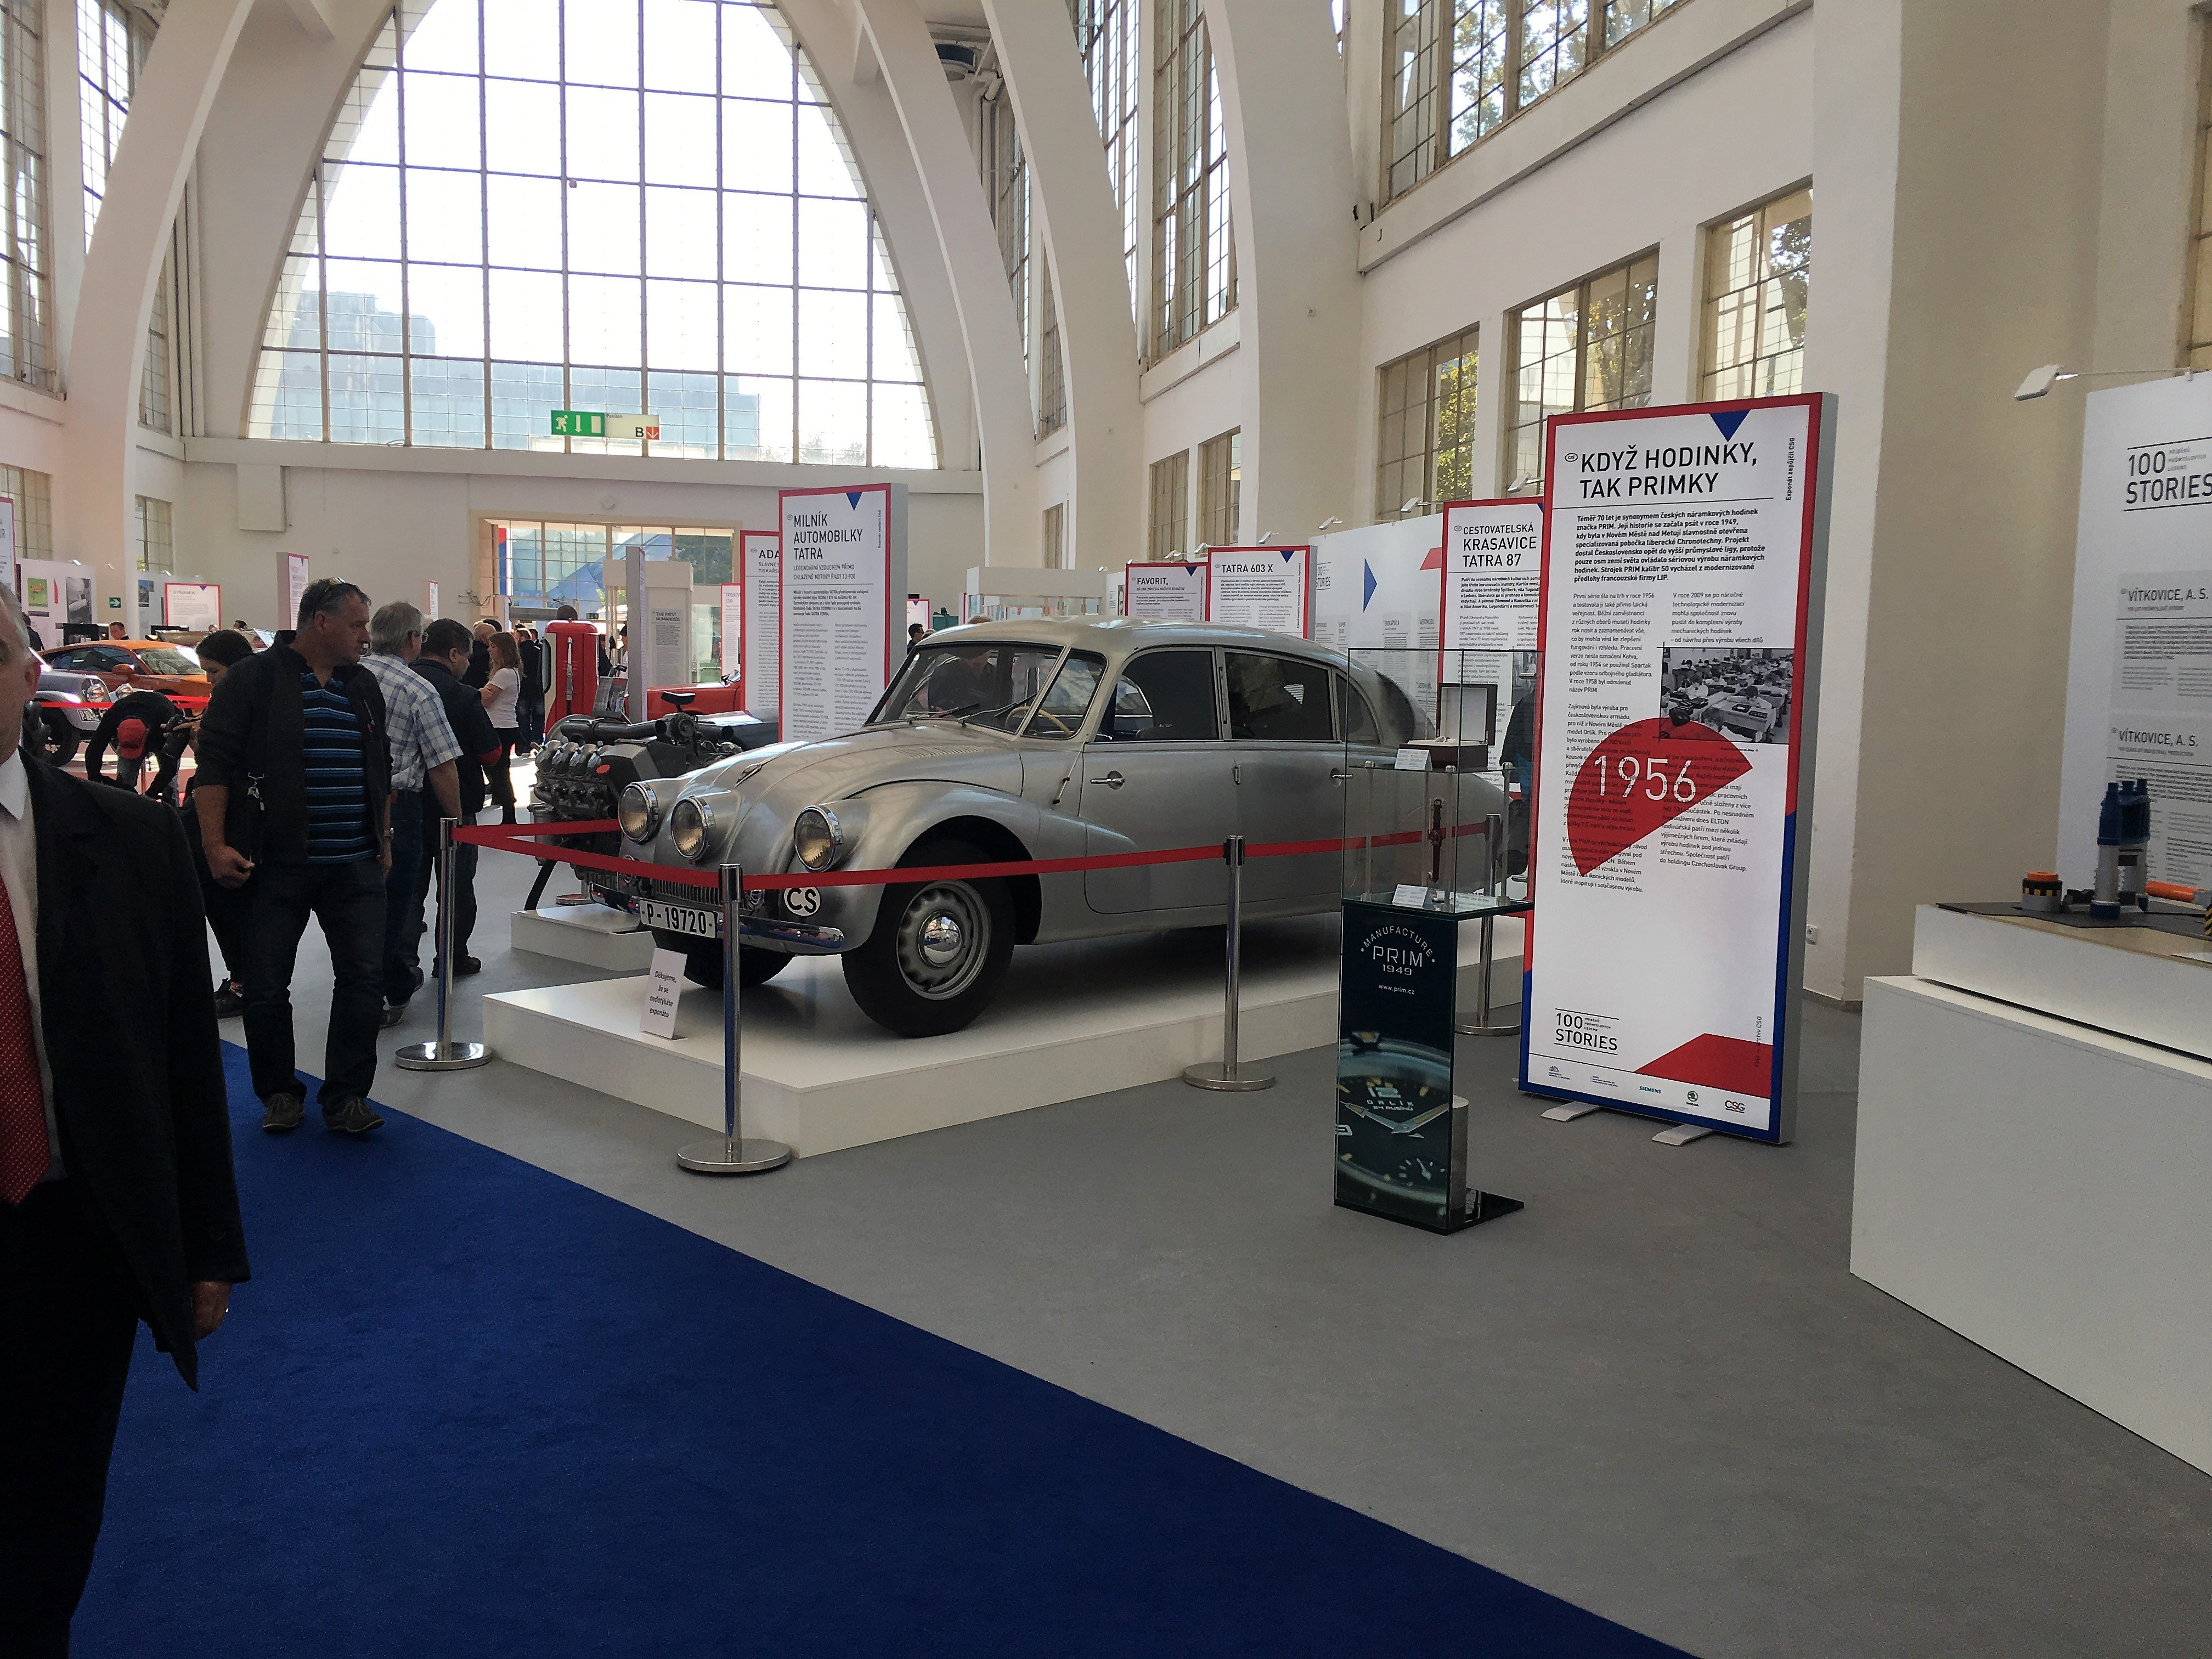 CZECHOSLOVAK GROUP commemorates its iconic products through the 100RIES exhibition at the International Engineering Fair in Brno